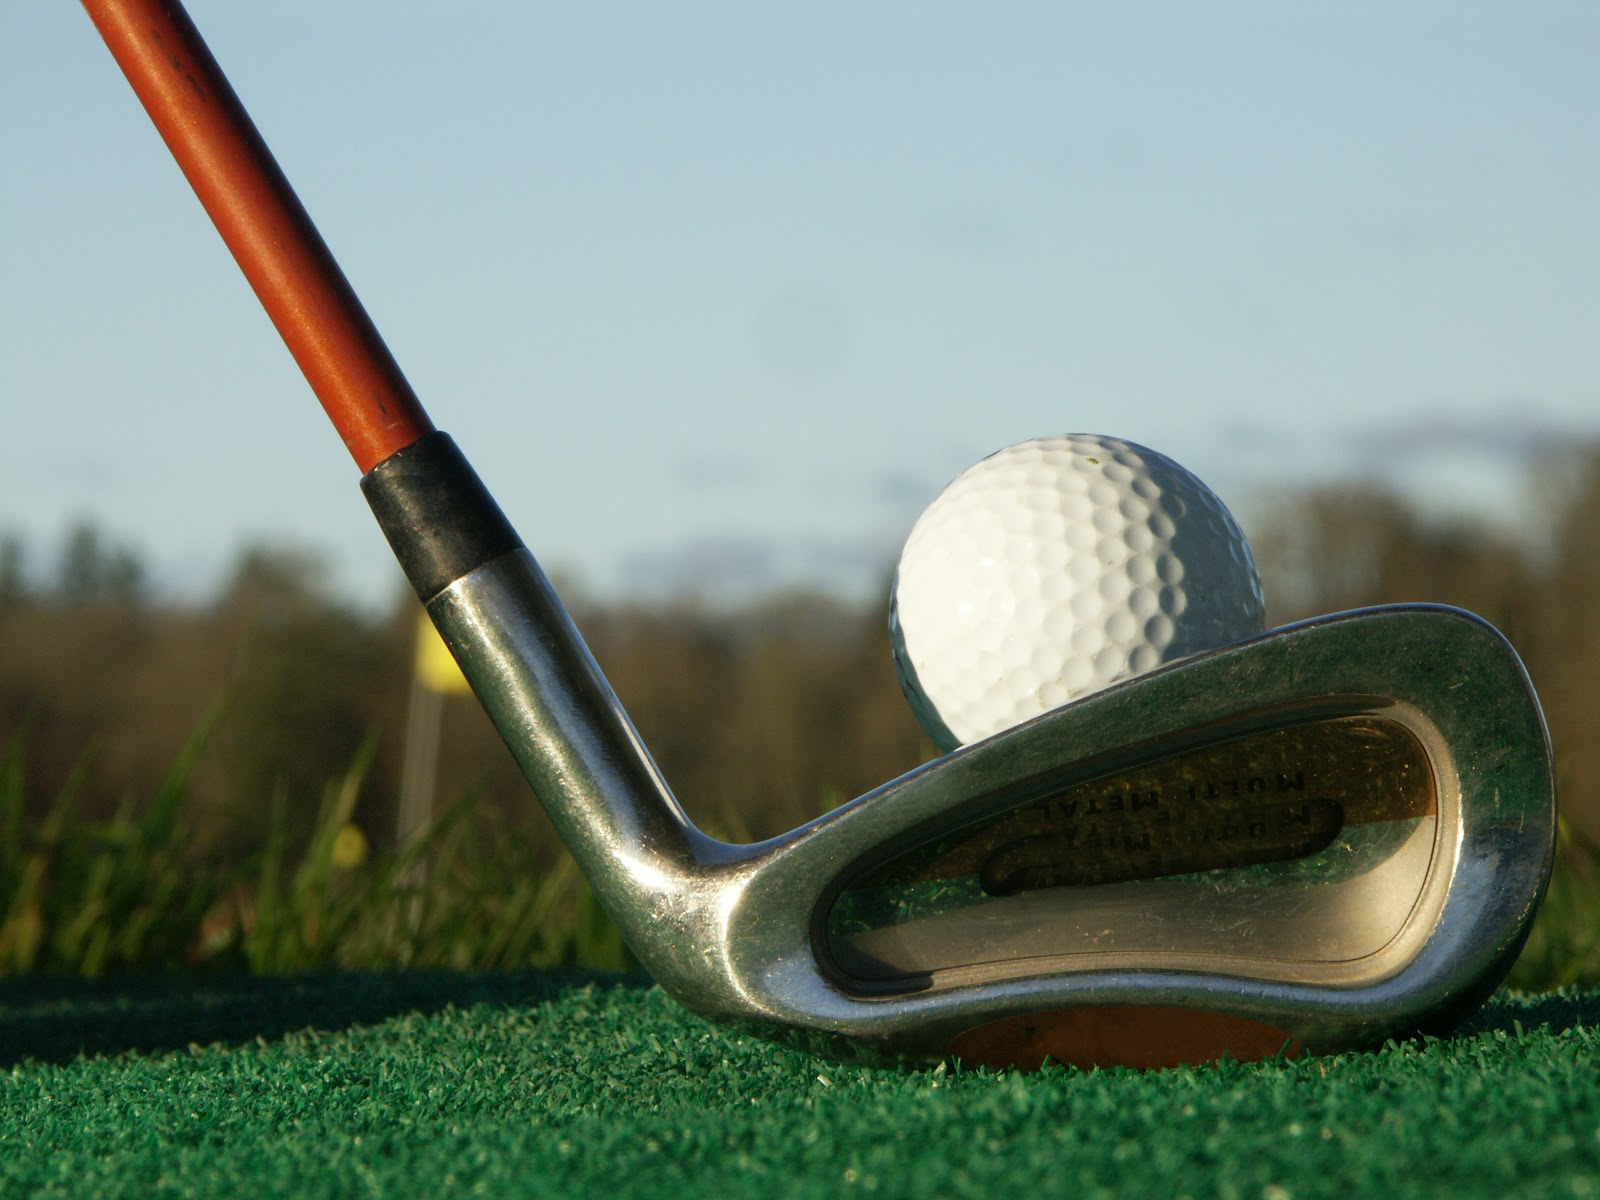 Funny Pictures Gallery: 06/24/12 Golf Clubs